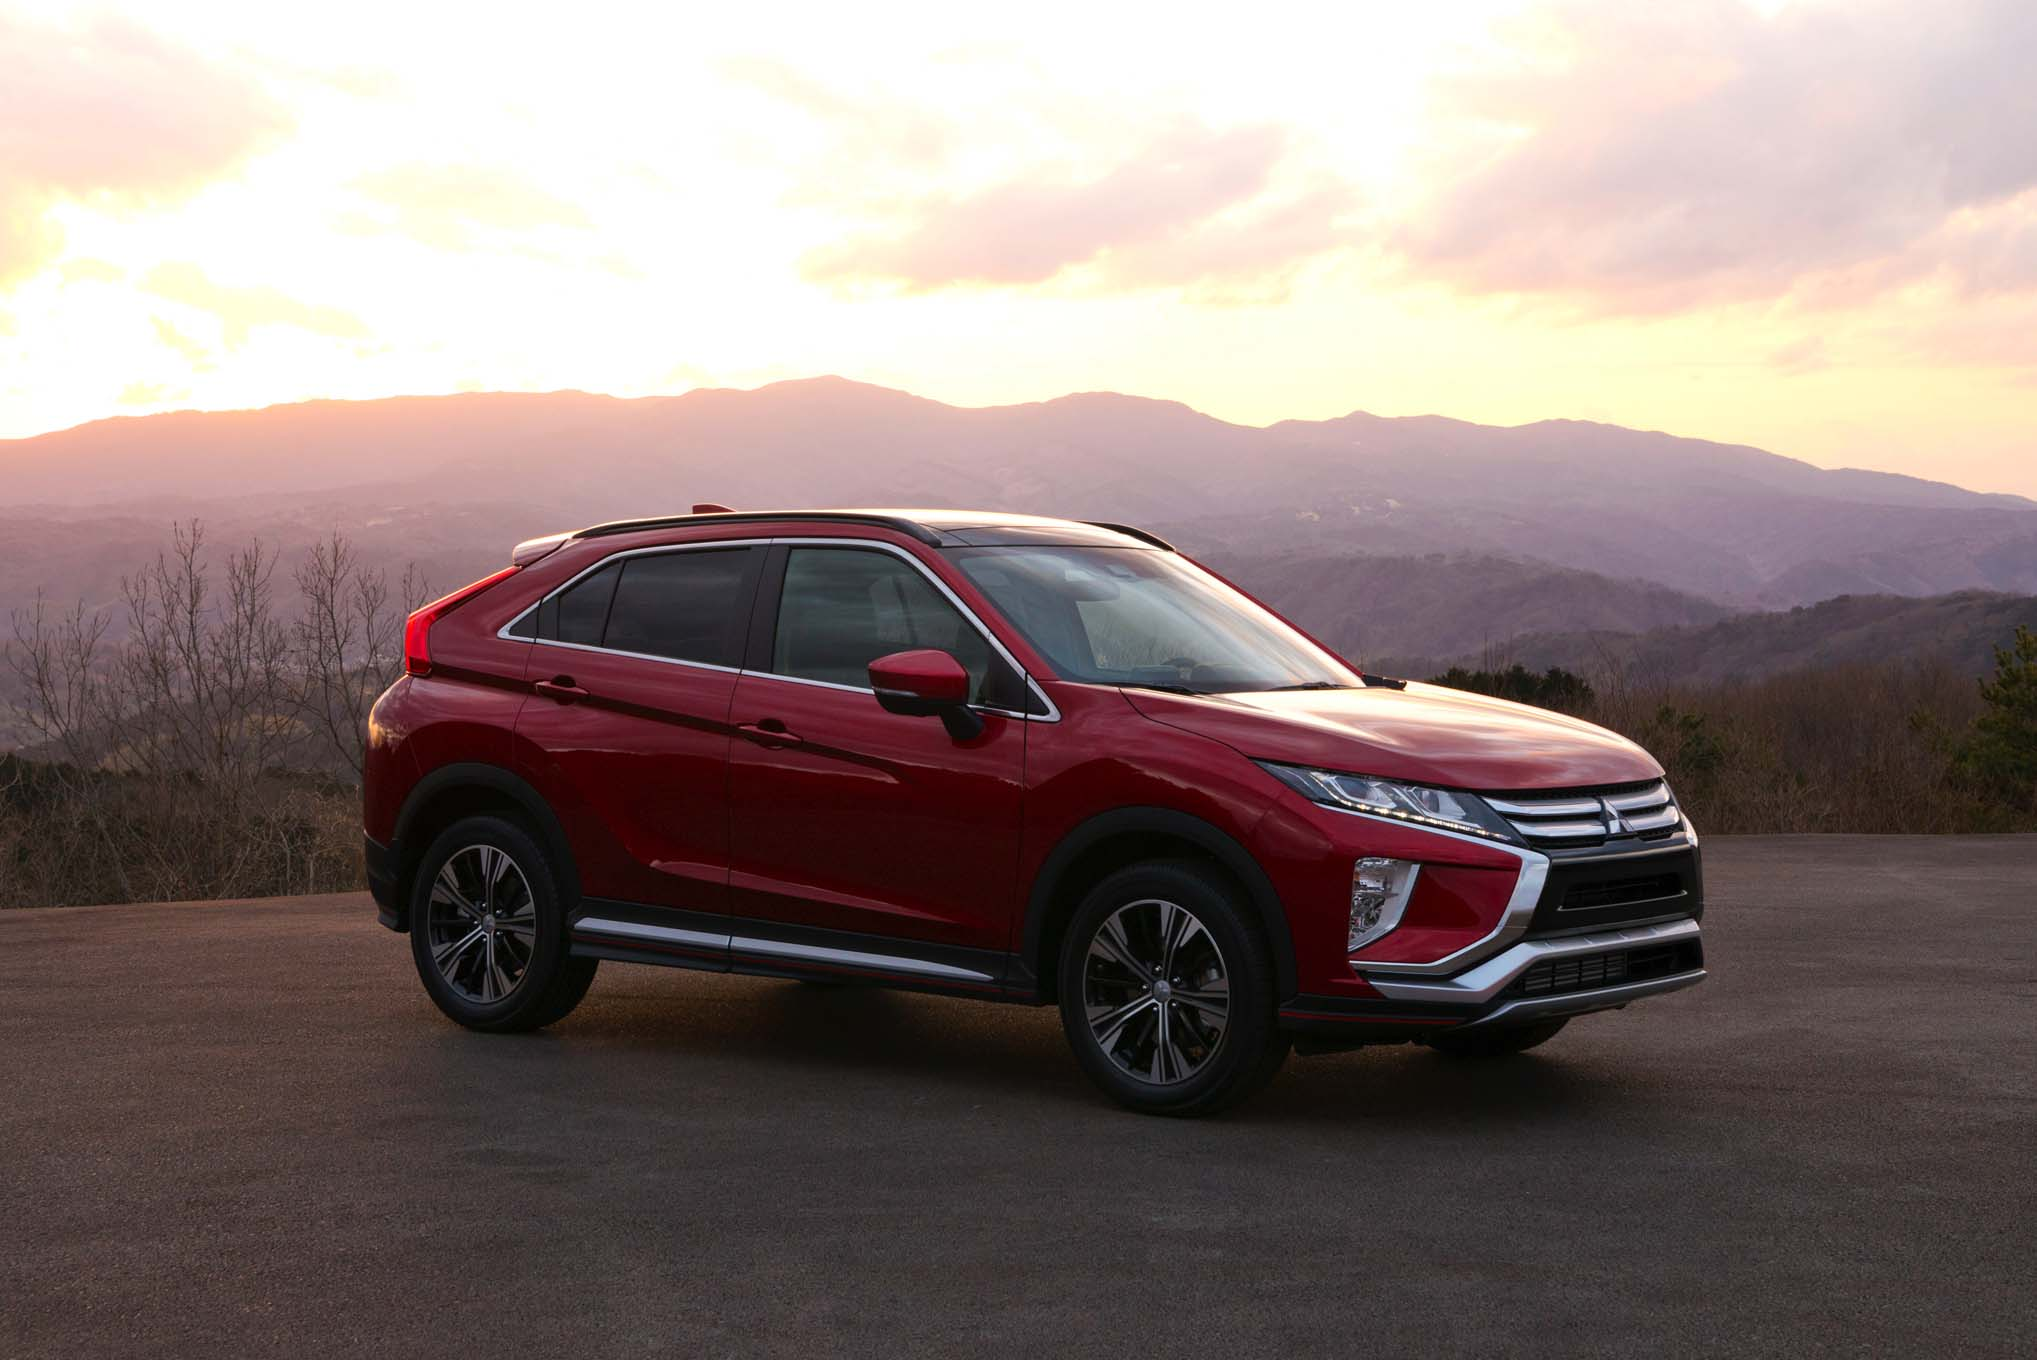 2018 Mitsubishi Eclipse Cross Front Side 02 1